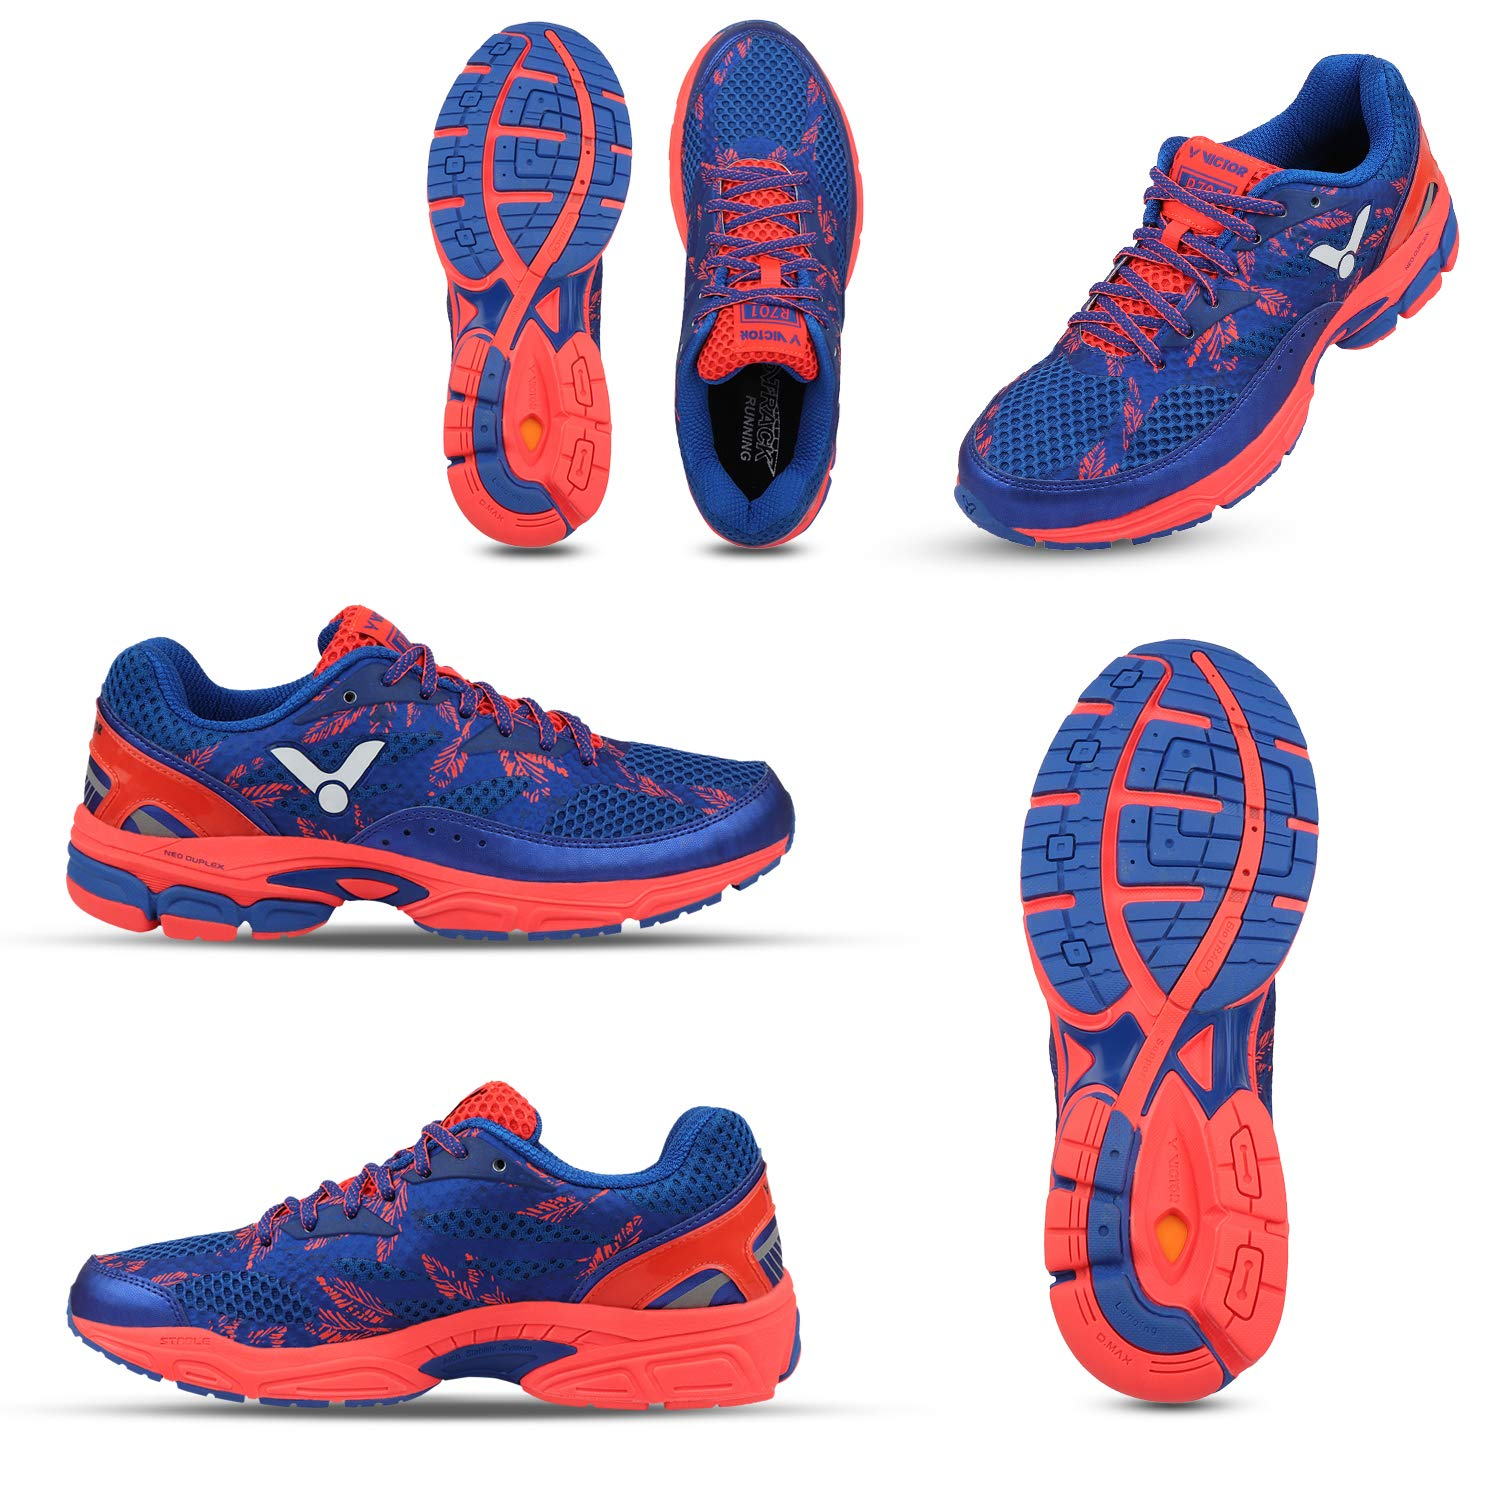 Buy Victor R-701-FI Running Shoe at